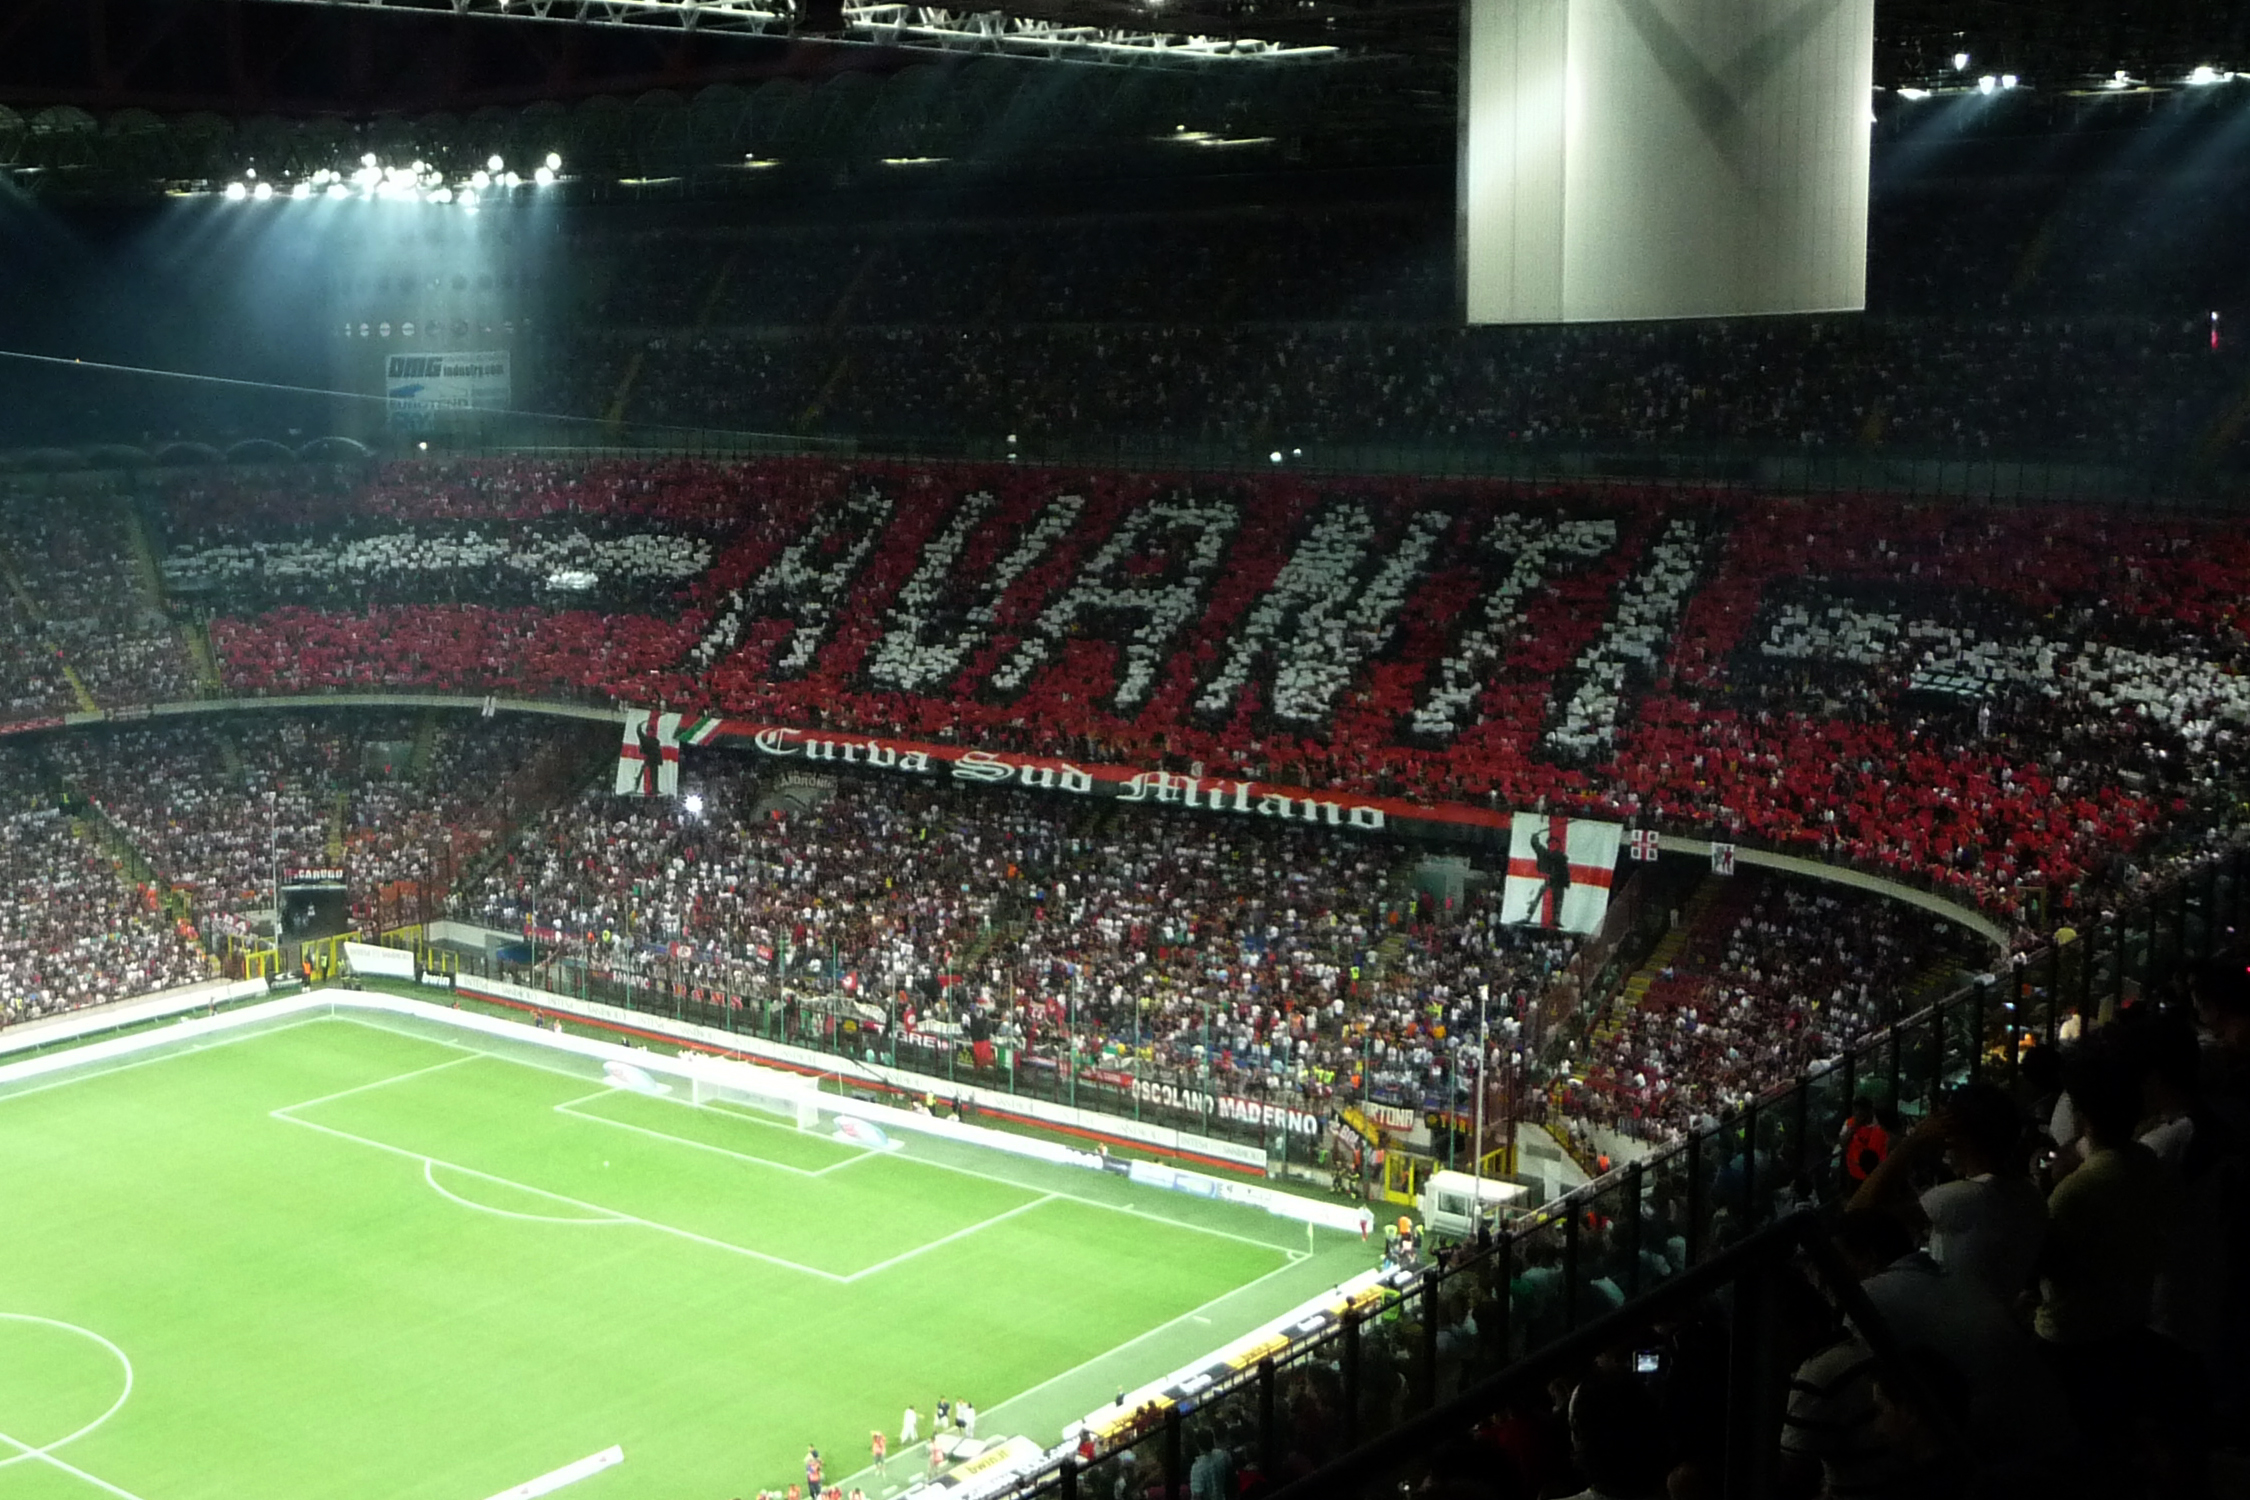 k 525 san siro milan - photo#2